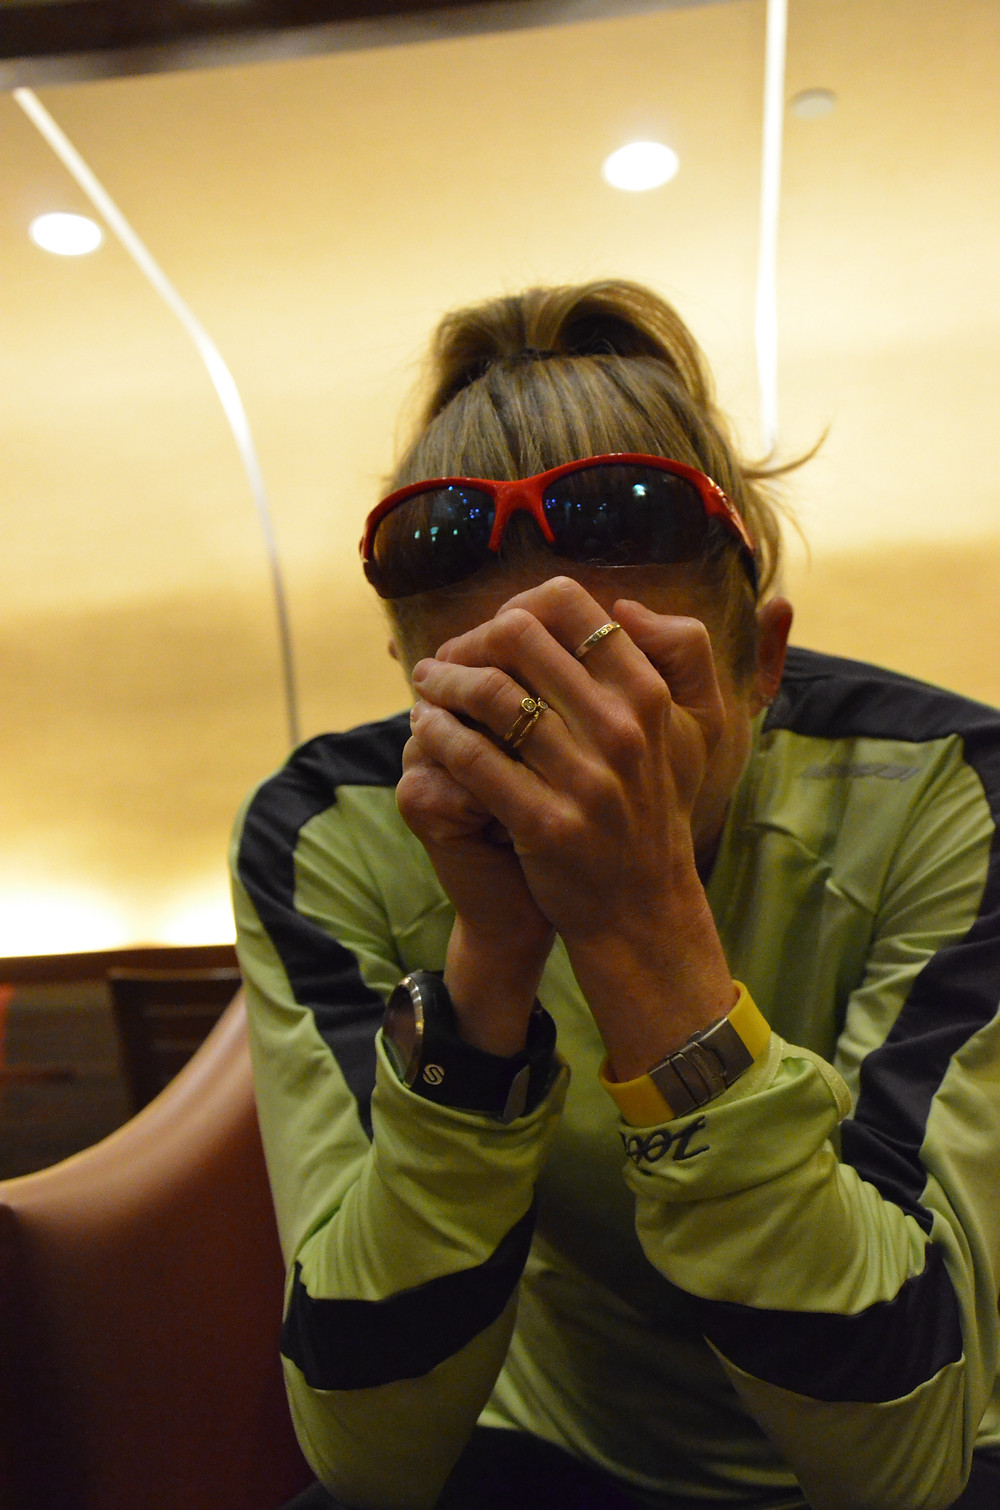 Triathlete Kelly Williamson thinking before a race